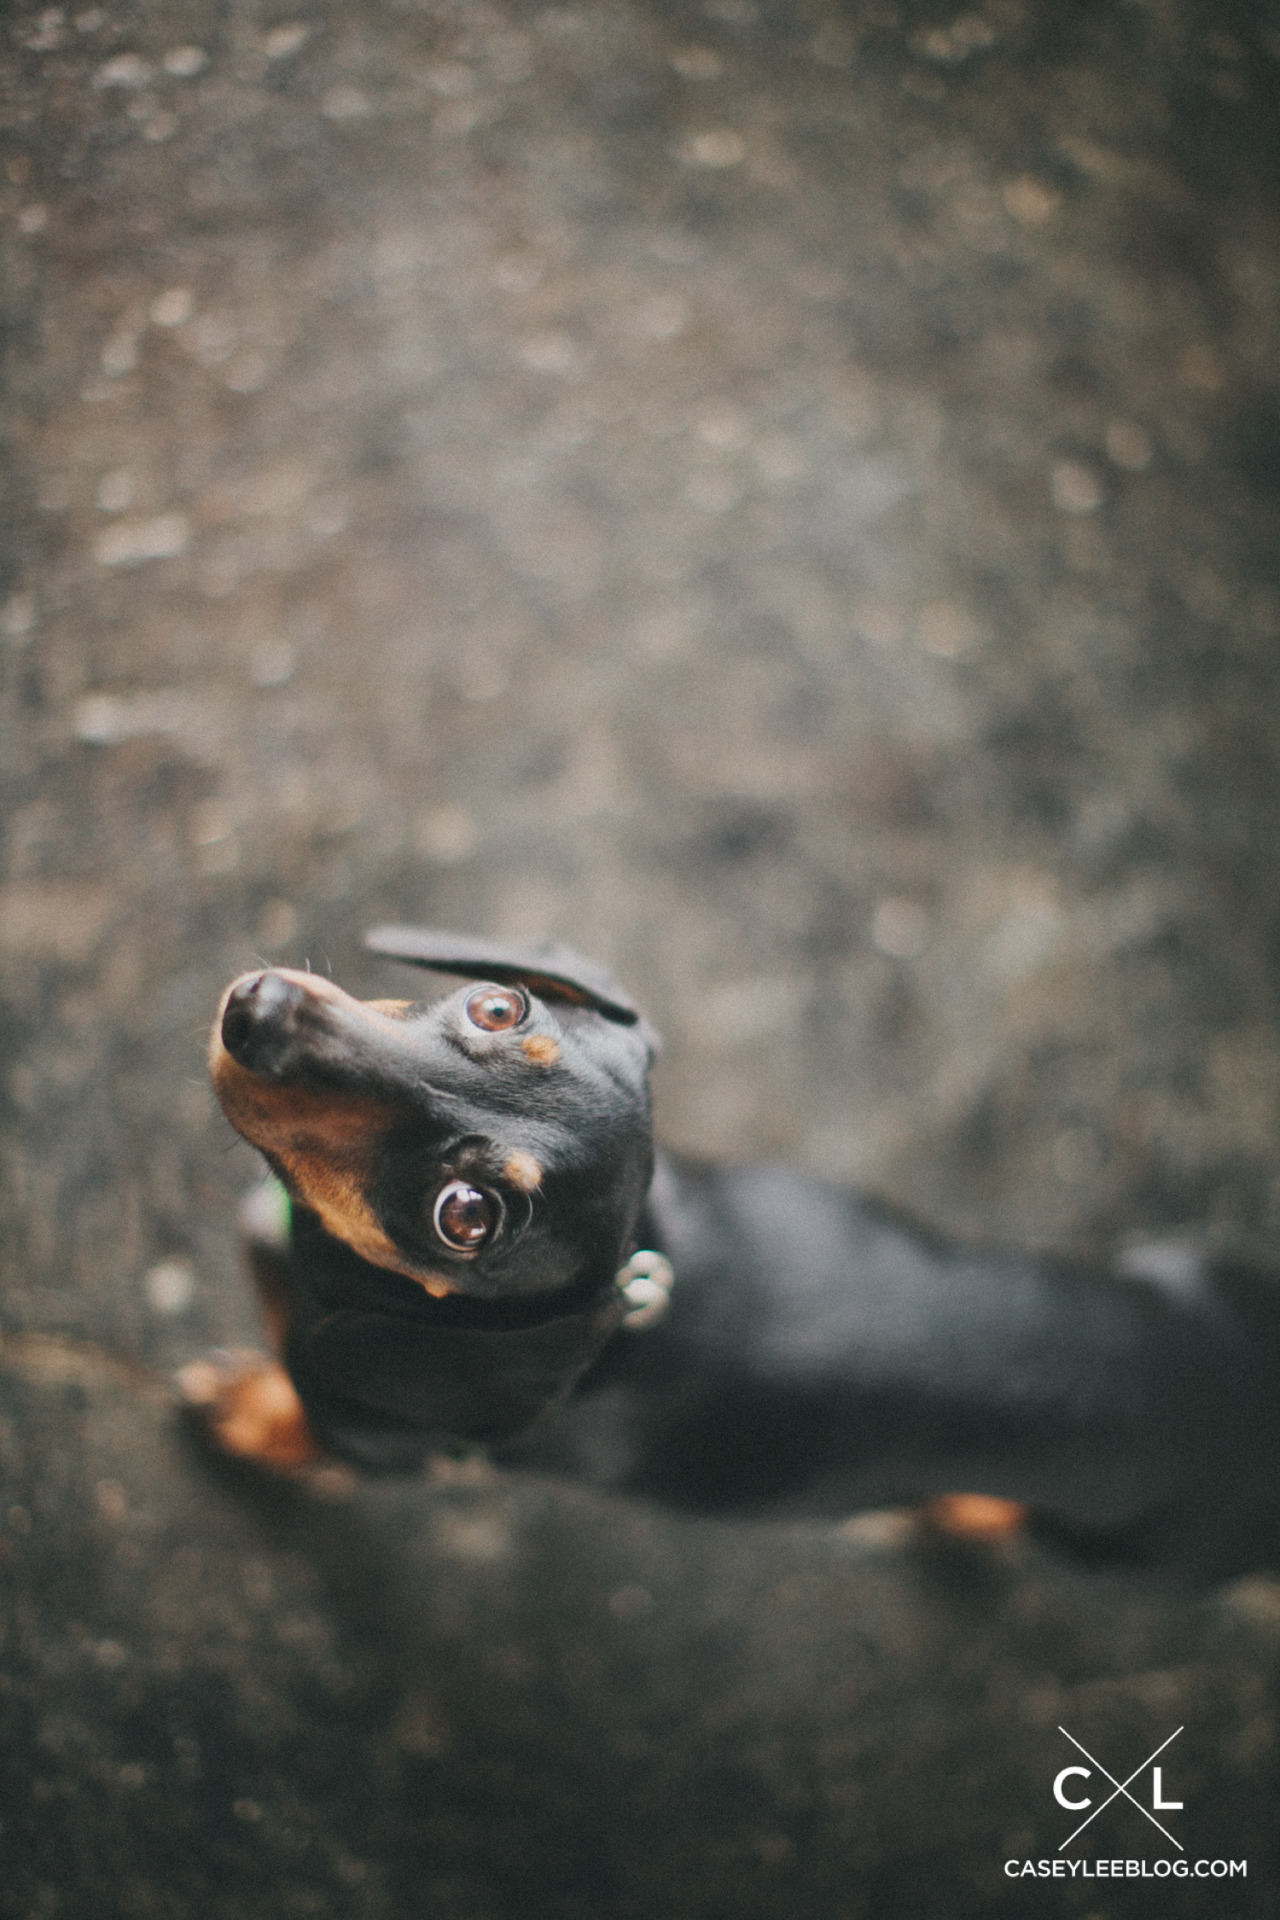 our miniature dachshund, Lola